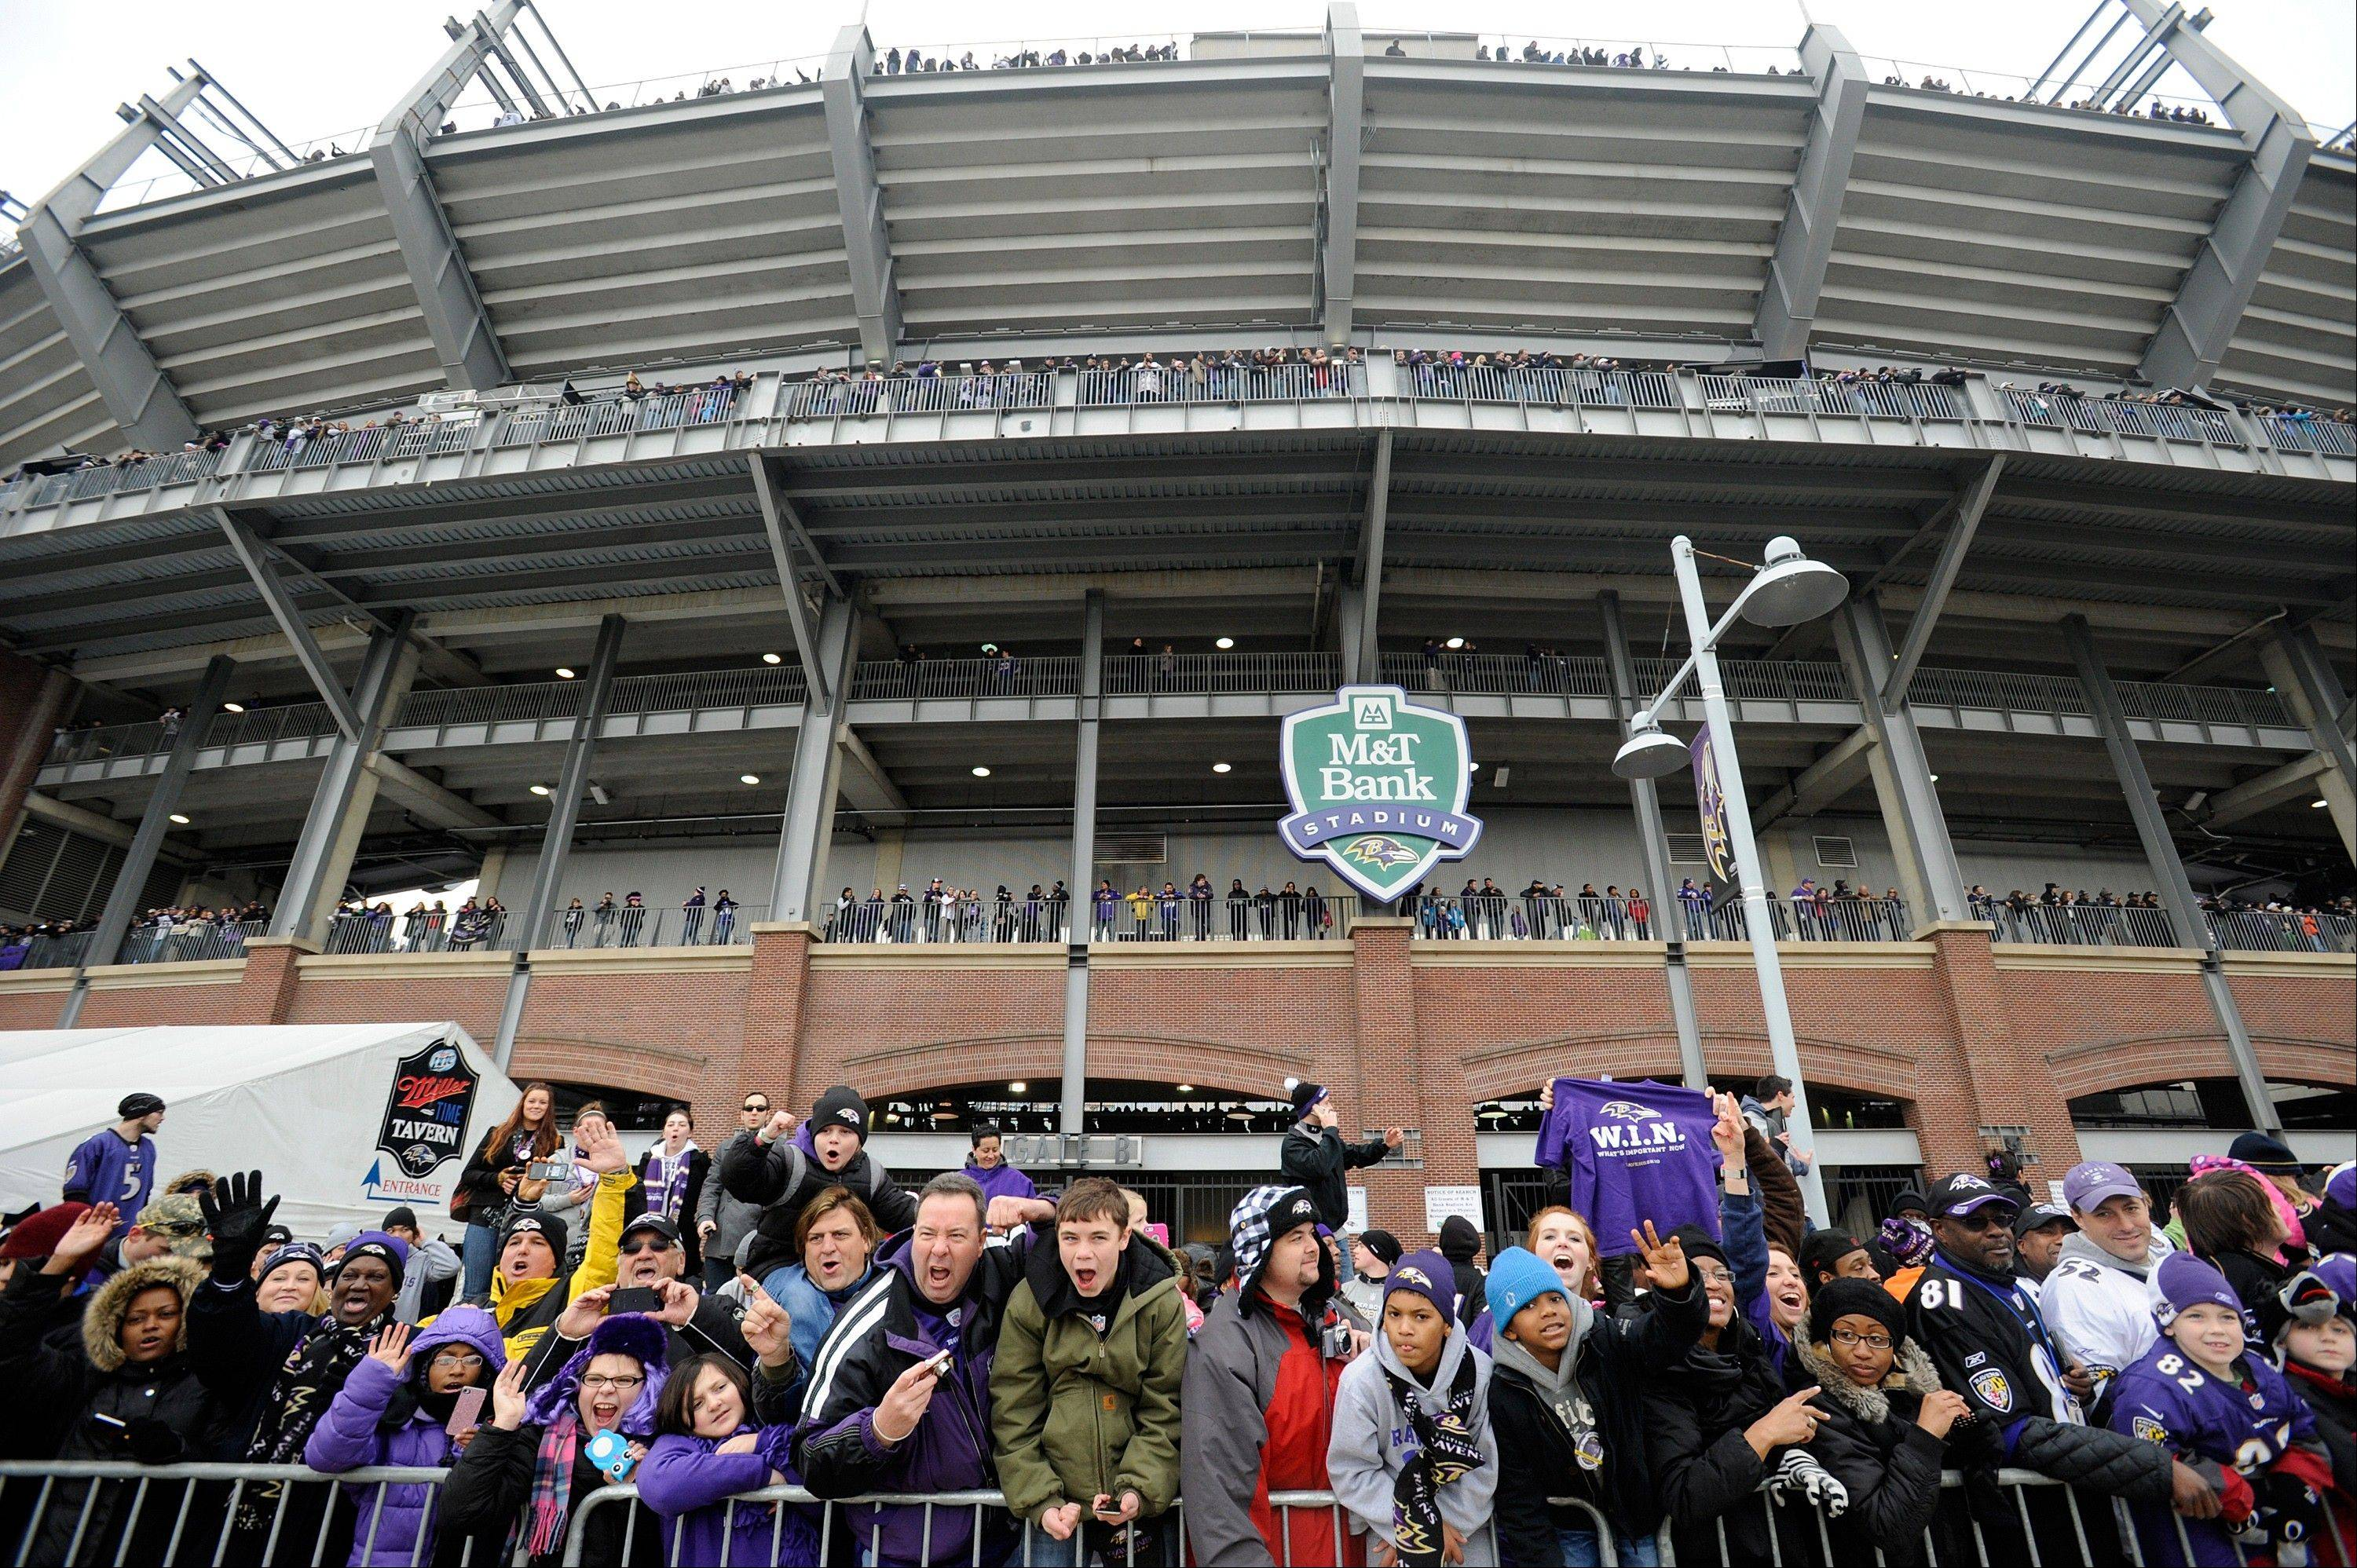 Baltimore Ravens NFL football fans cheer for the team outside of M&T Bank Stadium as the parade arrives during a celebration of the team's Super Bowl championship in Baltimore Tuesday, Feb. 5, 2013. The Ravens defeated the San Francisco 49ers 34-31 in Super Bowl XLVII on Sunday.